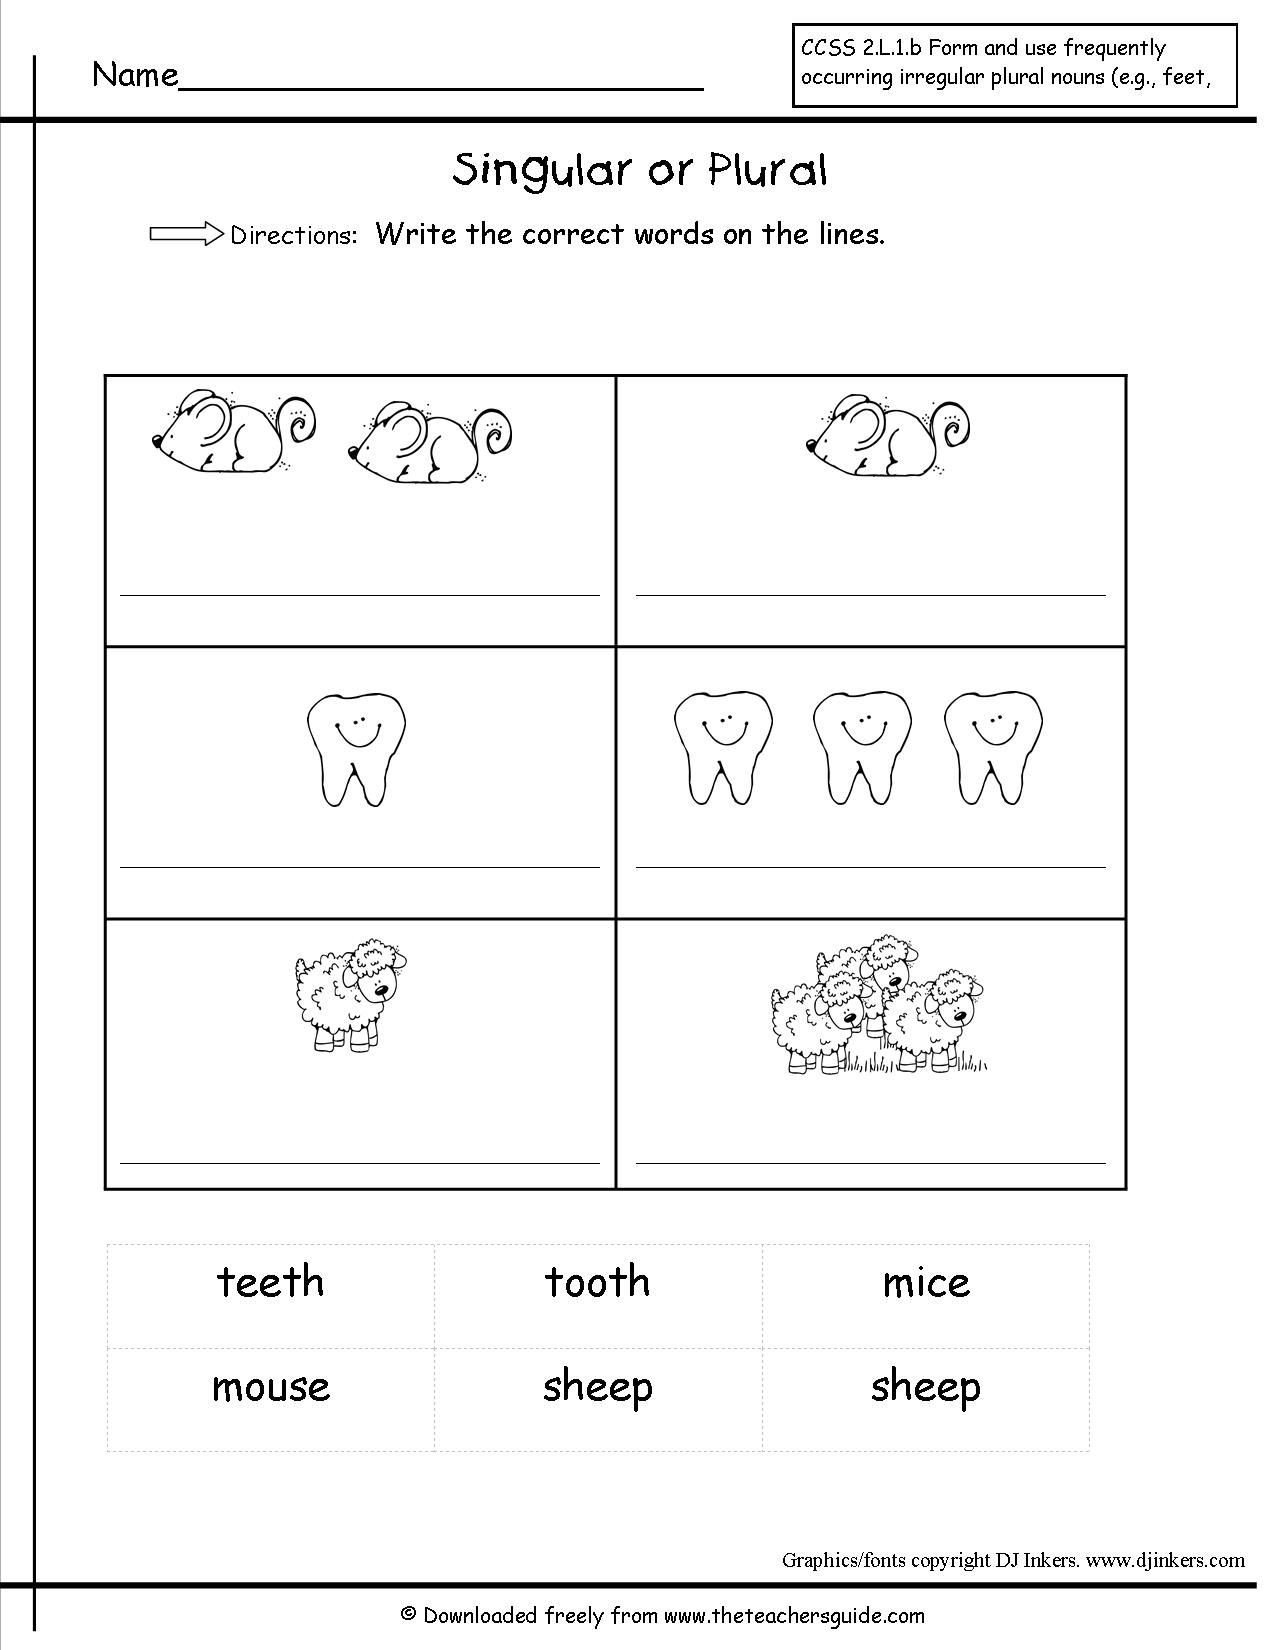 Plurals Worksheet 3rd Grade Irregular Plural Nouns Worksheet